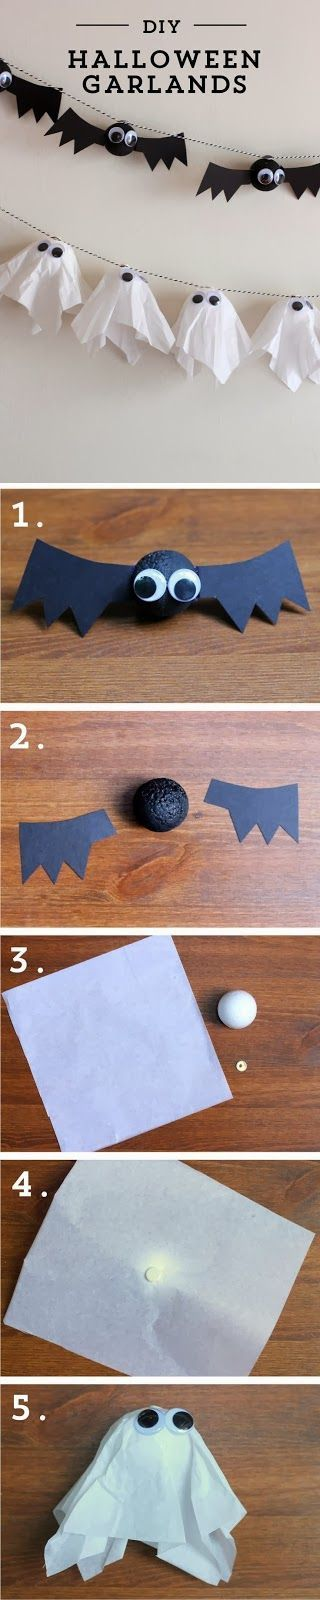 DIY Halloween Garlands Pictures, Photos, and Images for Facebook, Tumblr, Pinterest, and Twitter